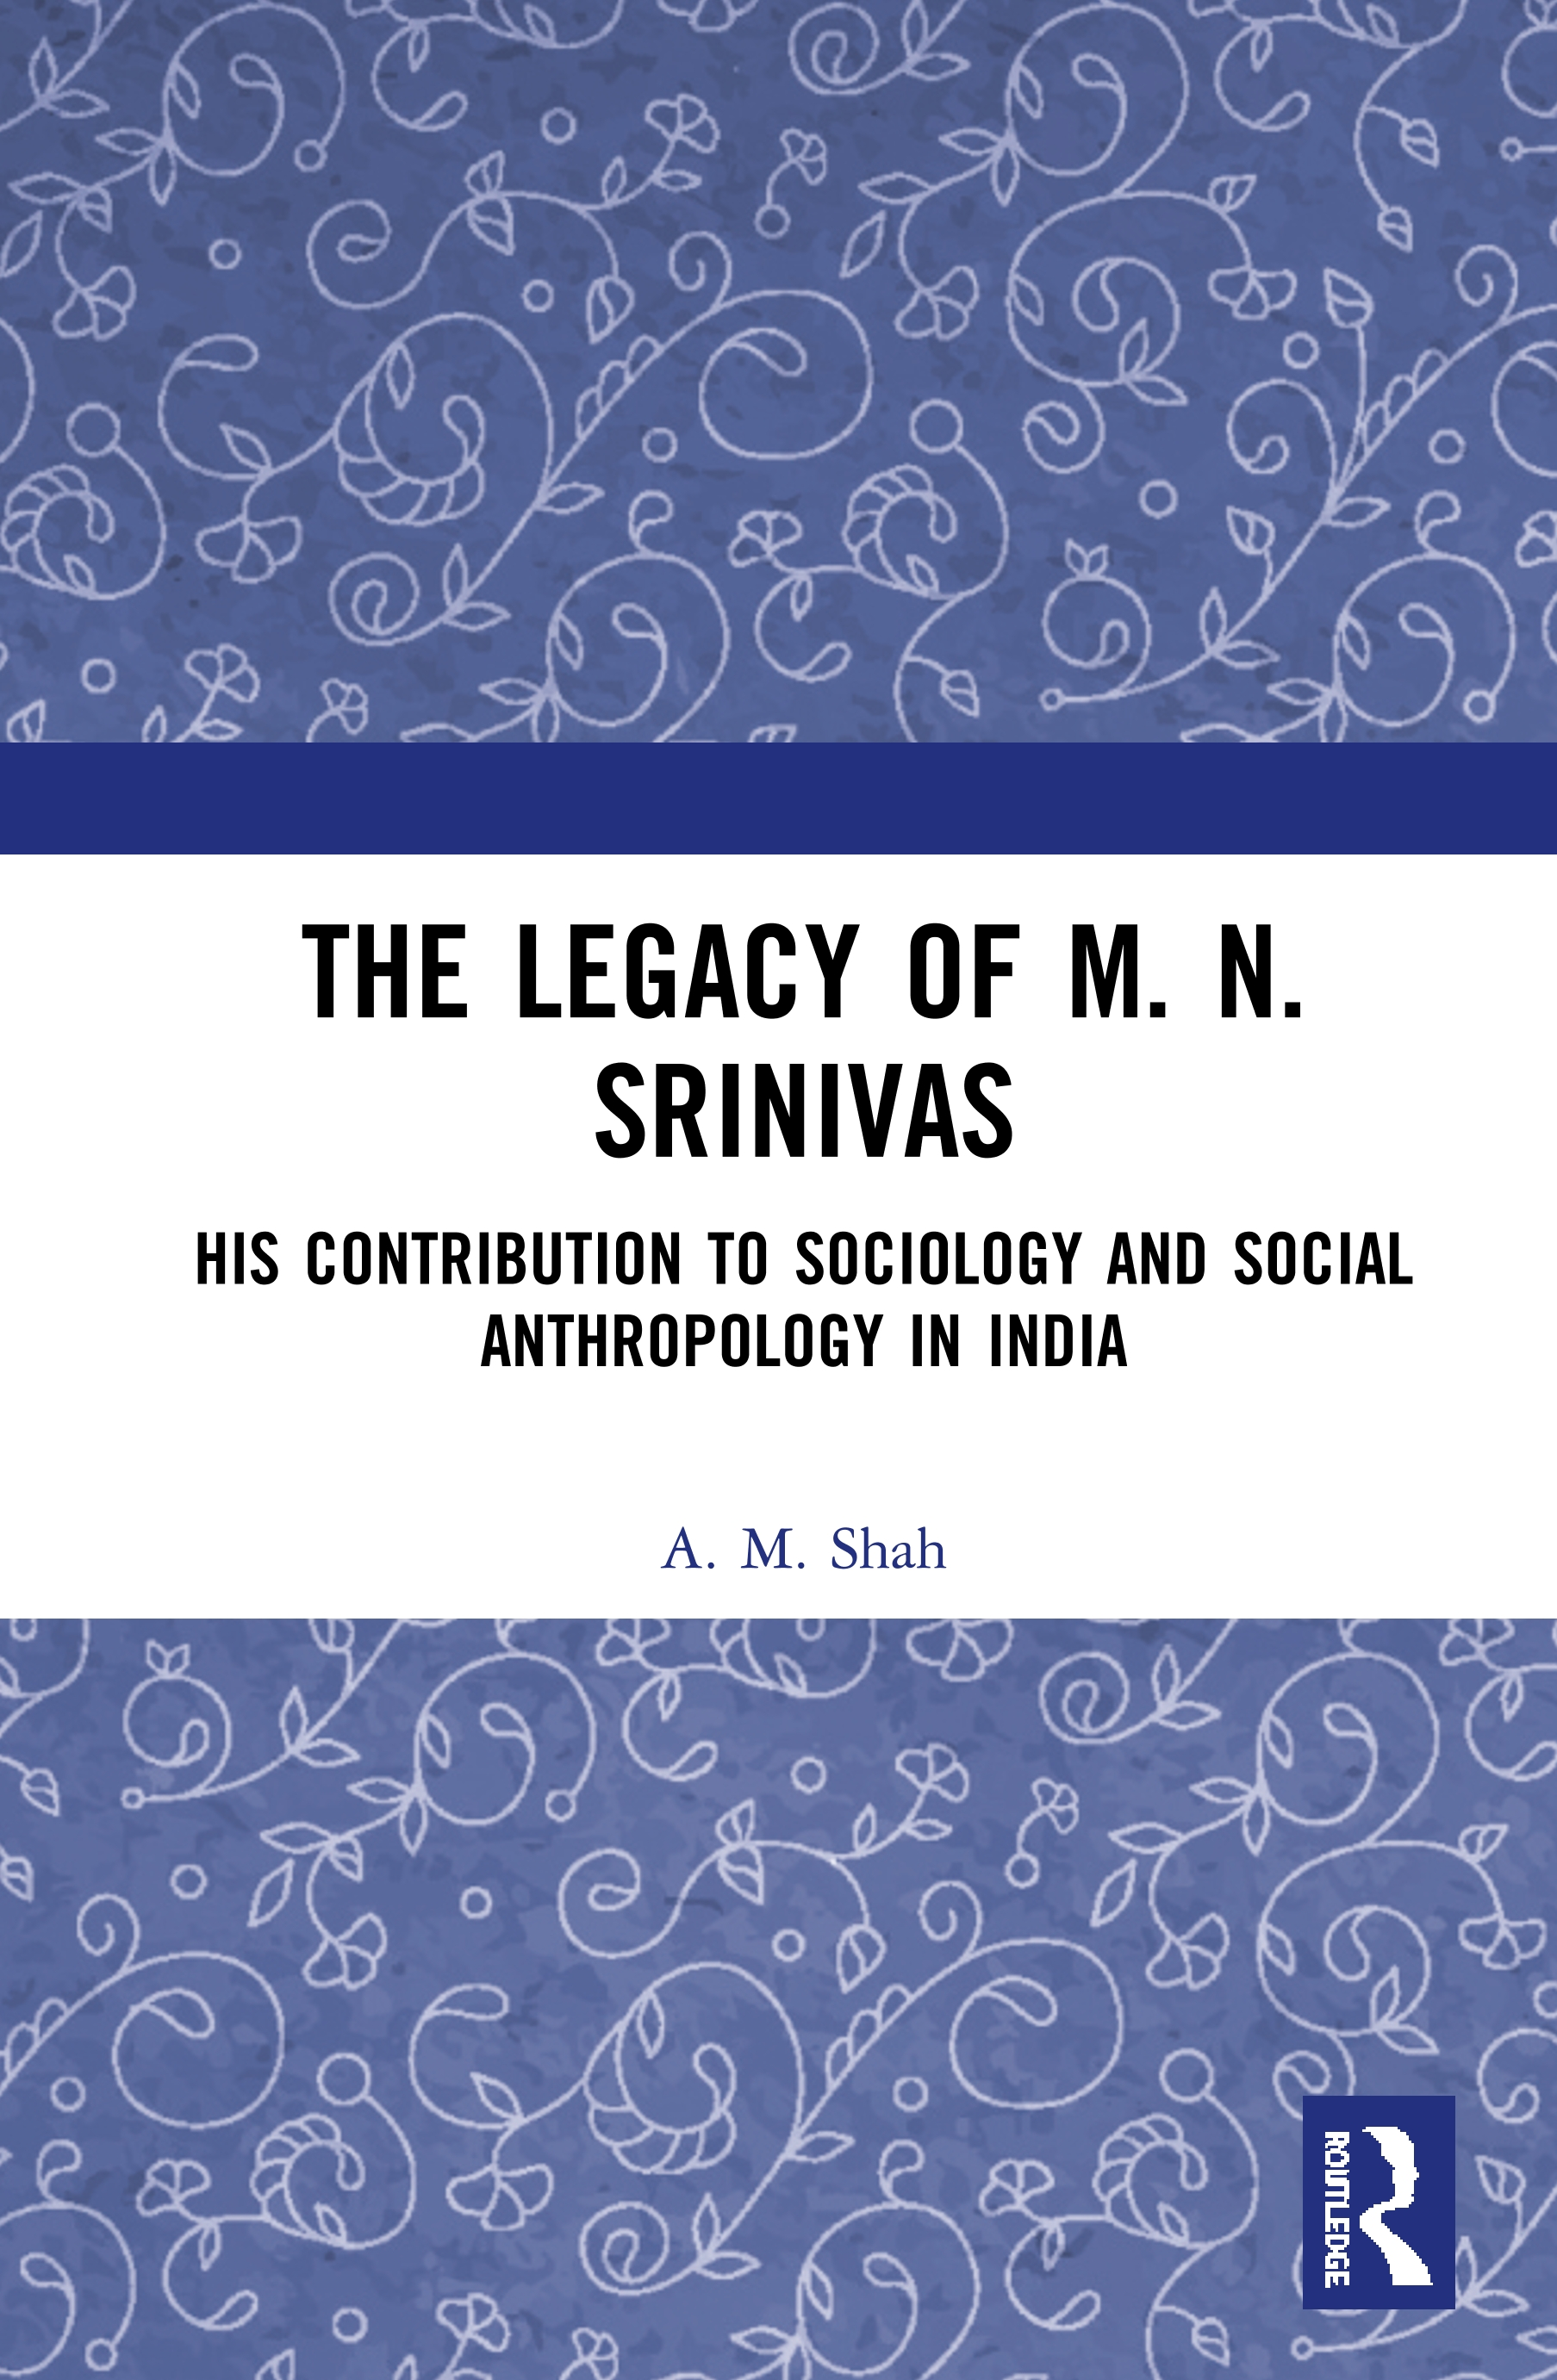 The Legacy of M. N. Srinivas: His Contribution to Sociology and Social Anthropology in India book cover